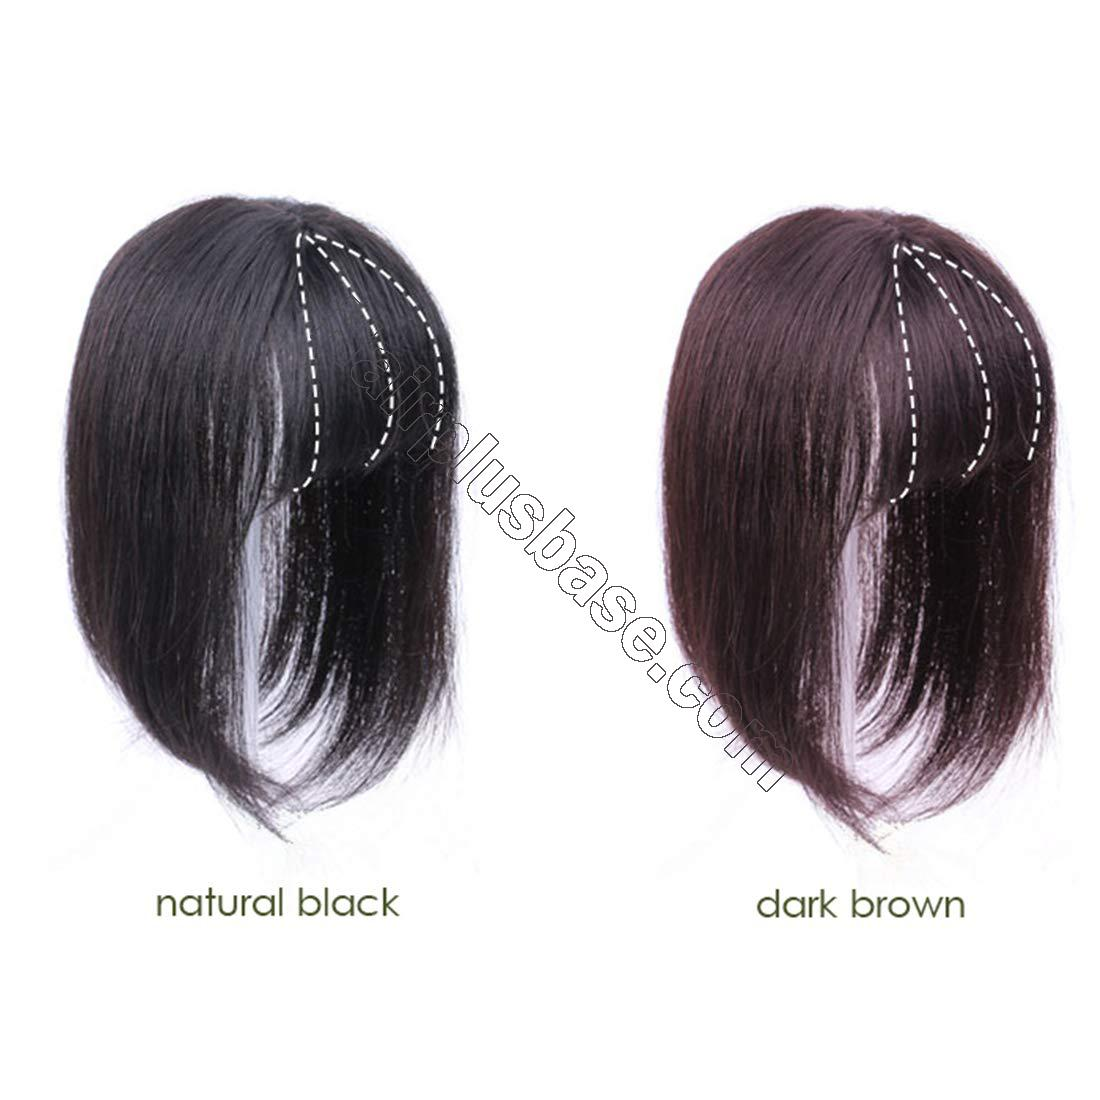 Straight Real Human Hair 3 Inch x 4 Inch Crown Topper Hairpiece with Bangs for Women with Thinning Hair 2